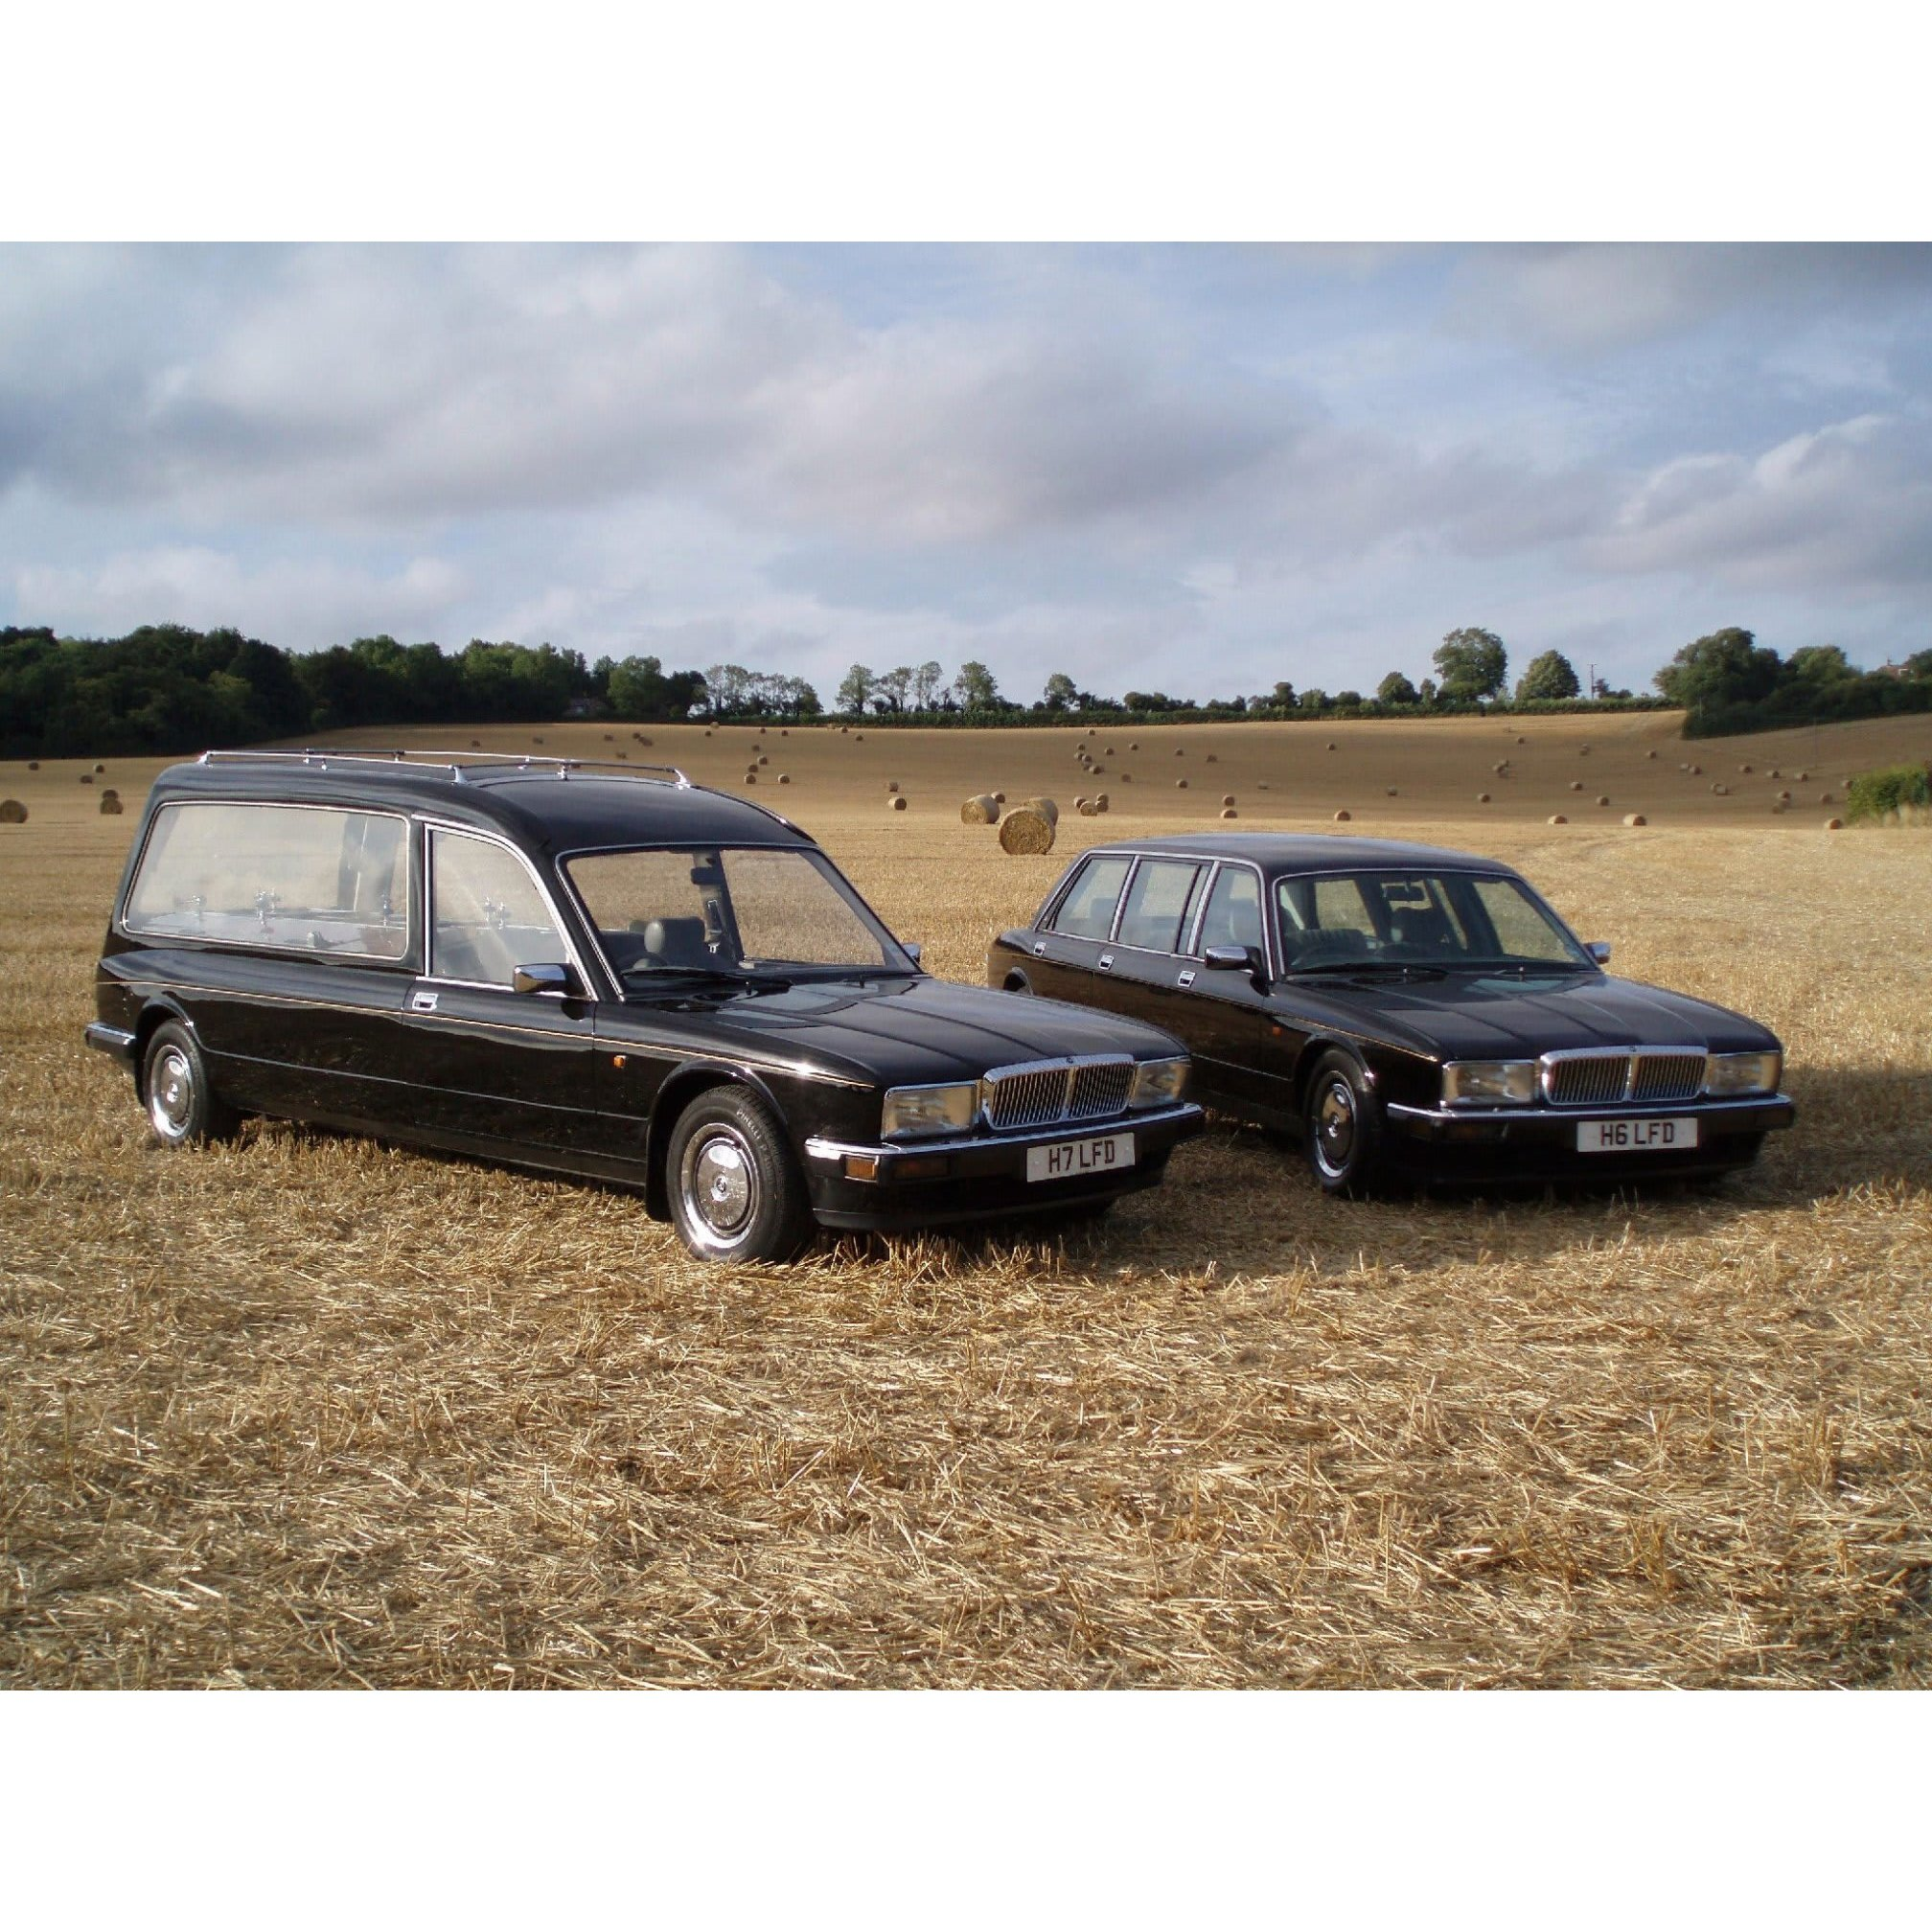 Country Funerals - Ashford, Kent TN25 4LE - 01233 712222 | ShowMeLocal.com